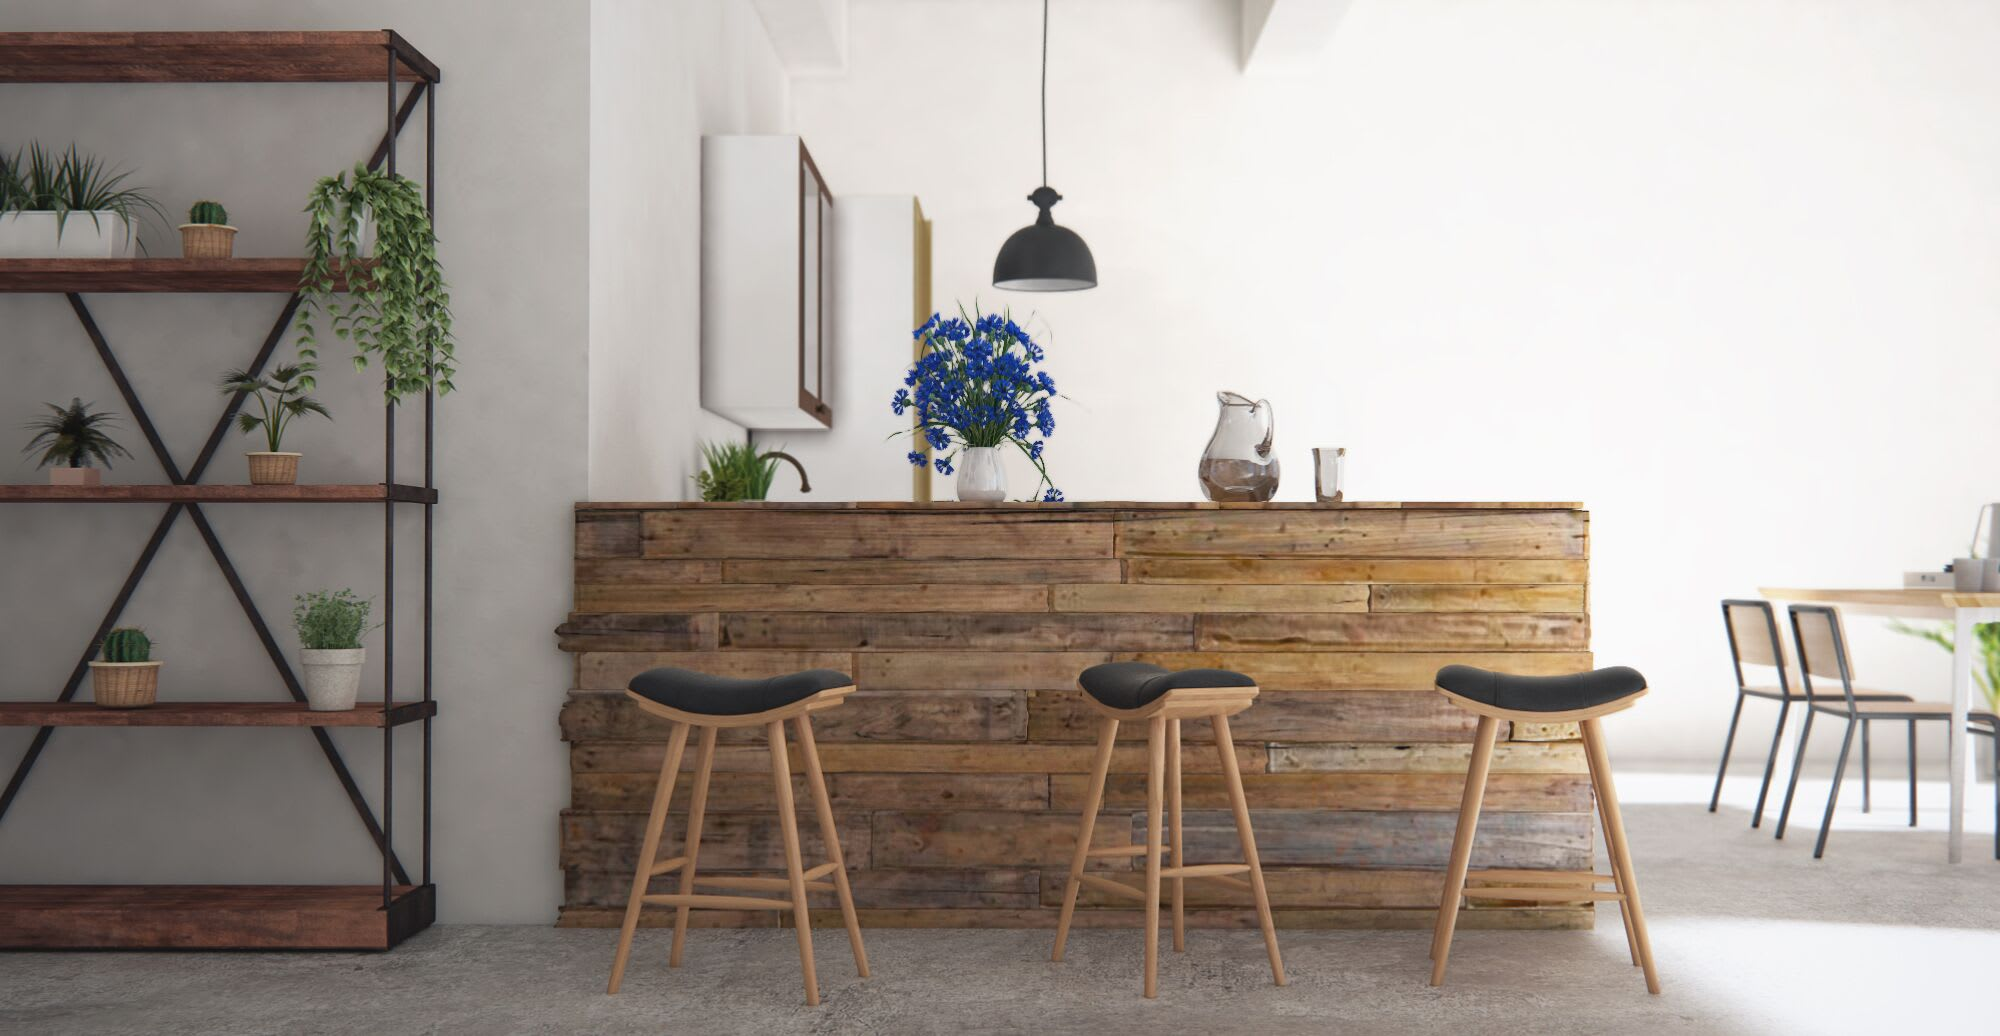 A bar set up in a modern dining room